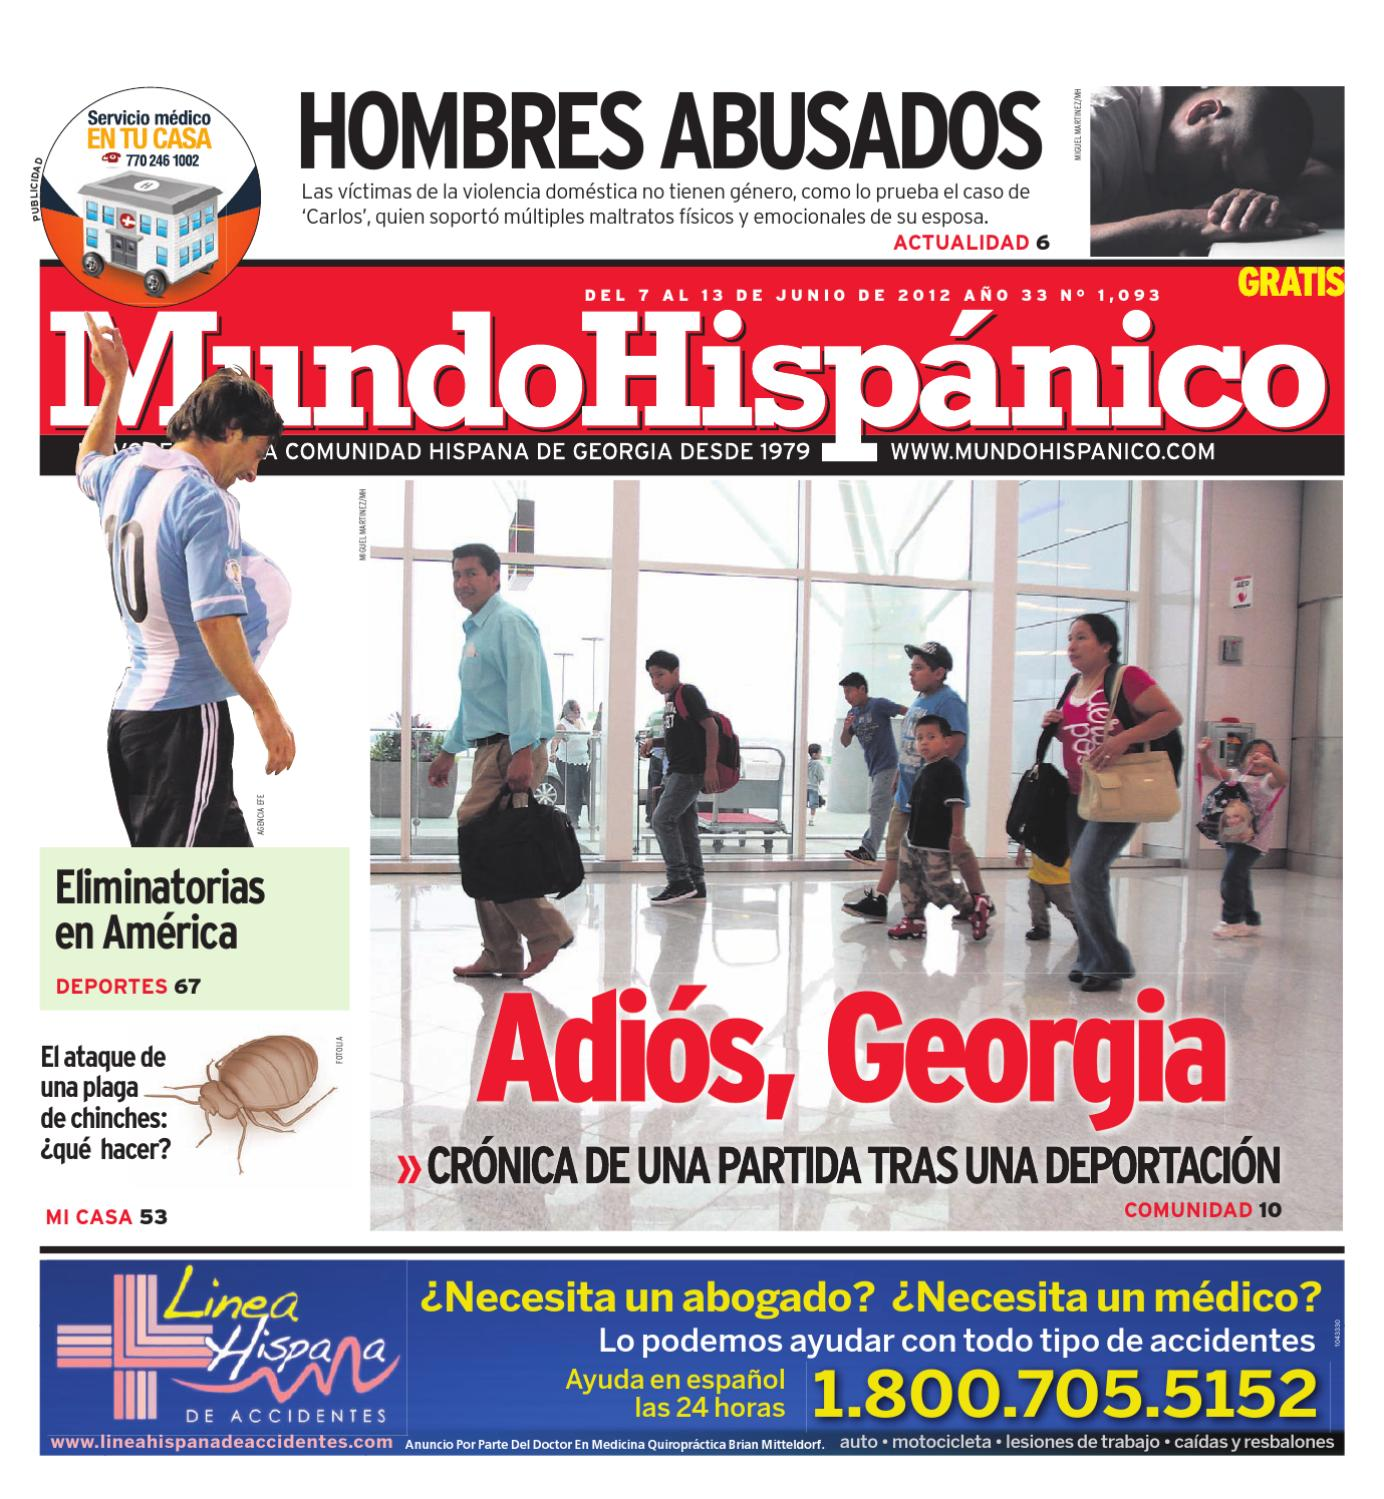 Mundo Hispanico 06-07-12 by MUNDO HISPANICO - issuu